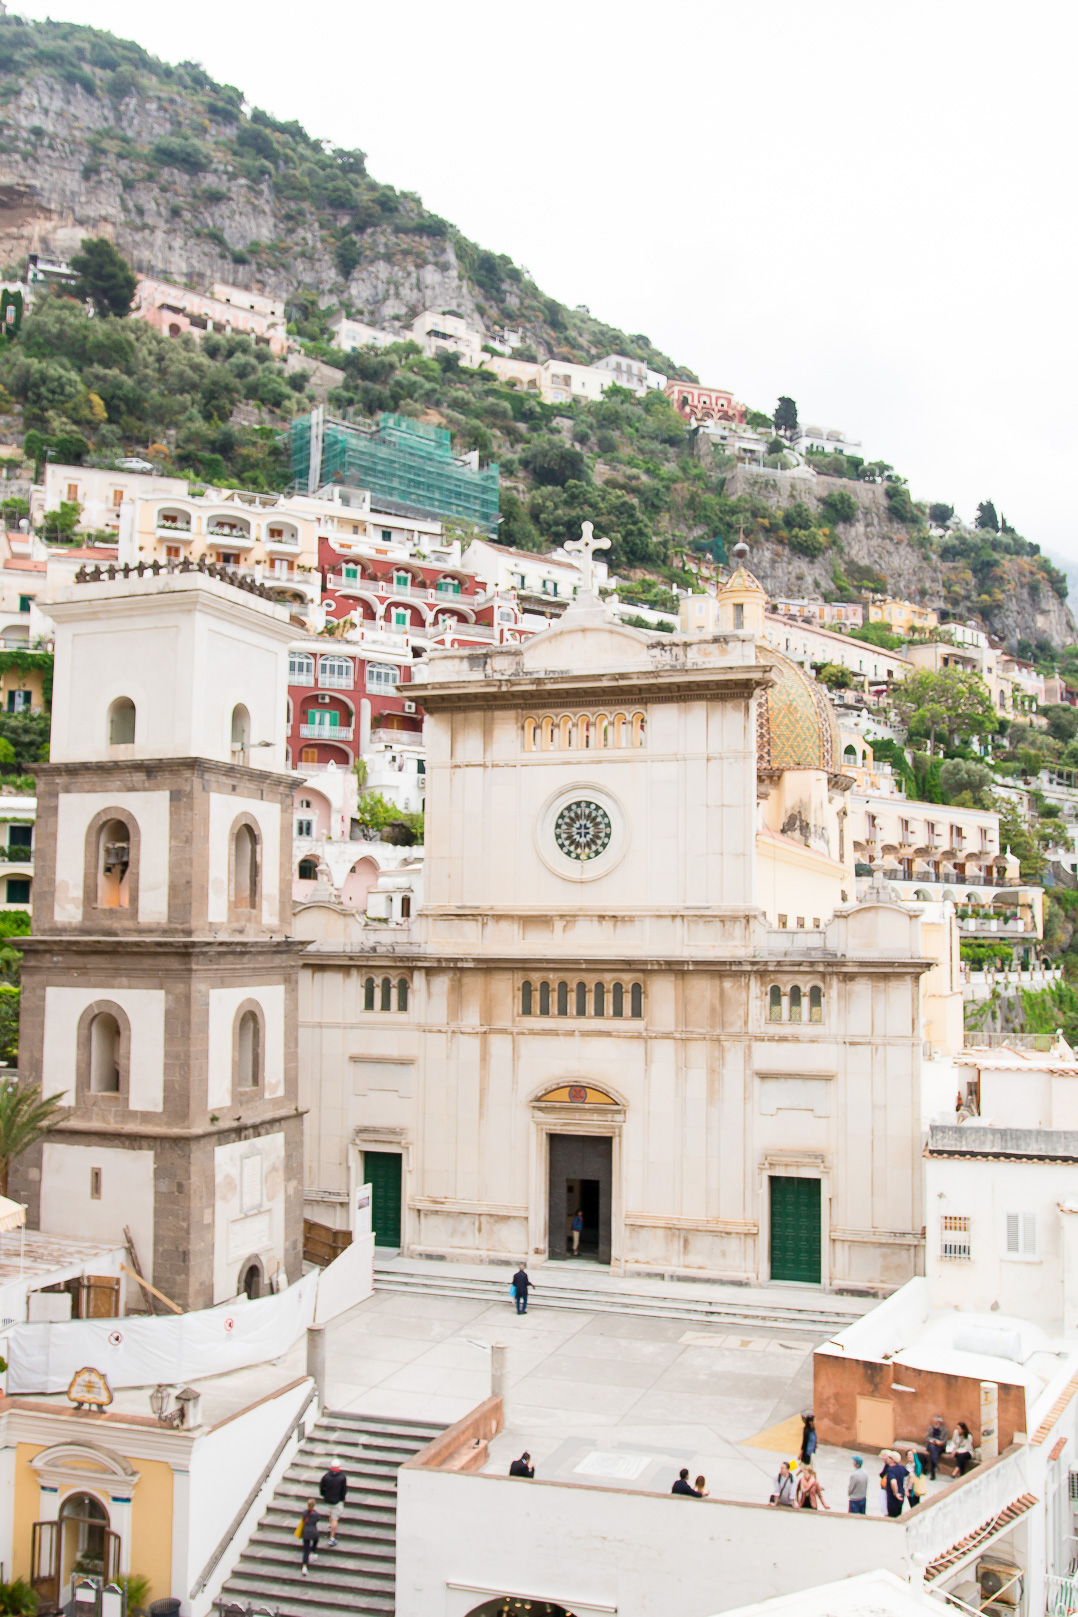 The church in Positano.